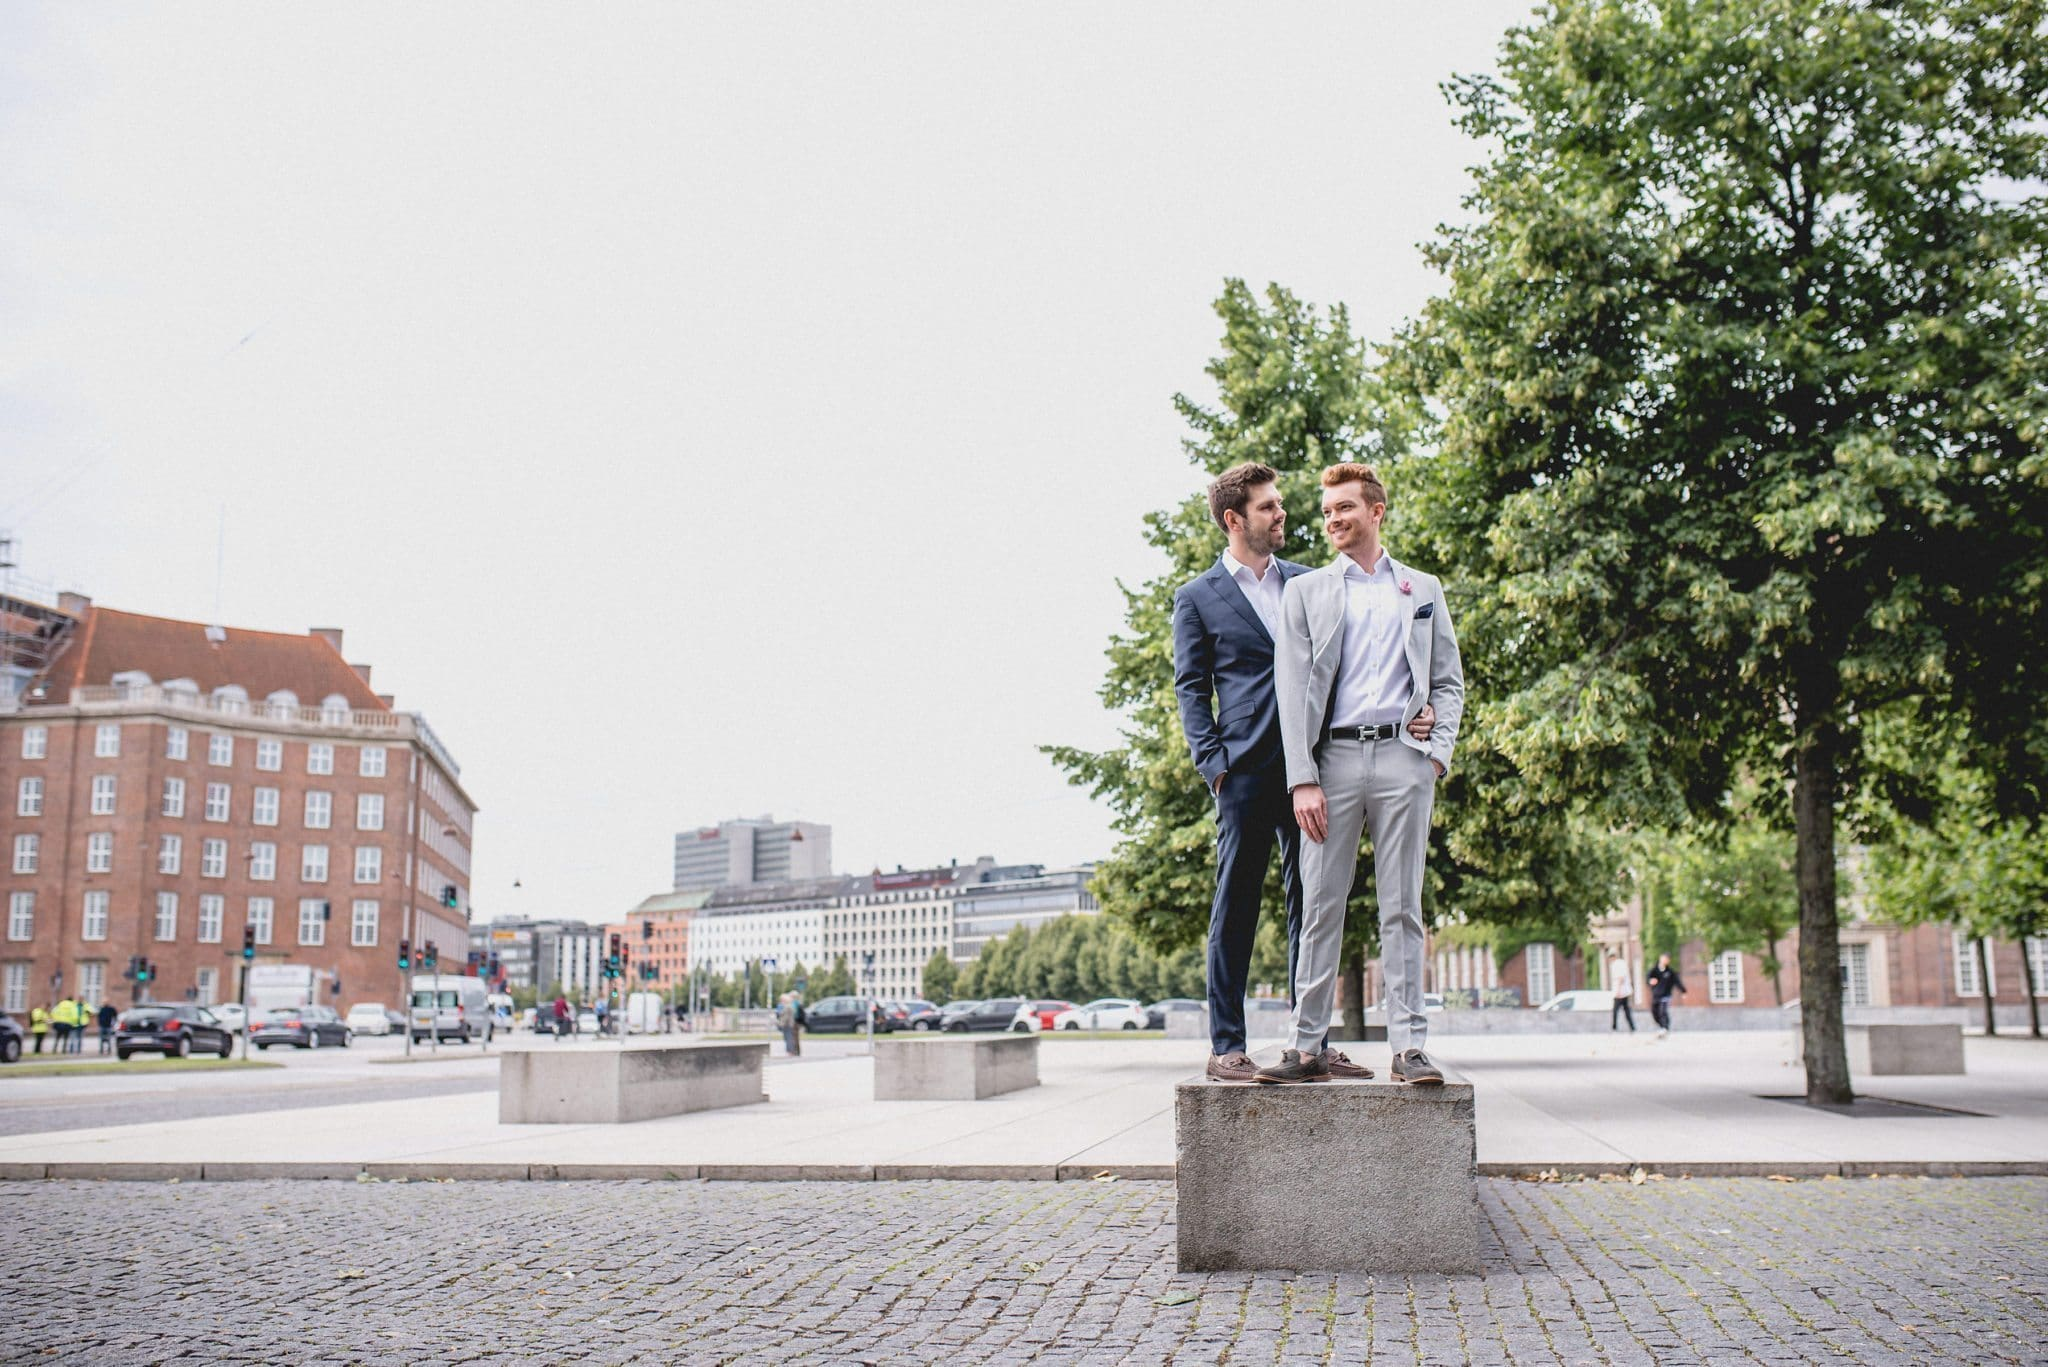 A striking shot of Drew and Tom standing together on a pillar in Copenhagen. No-one else is around.